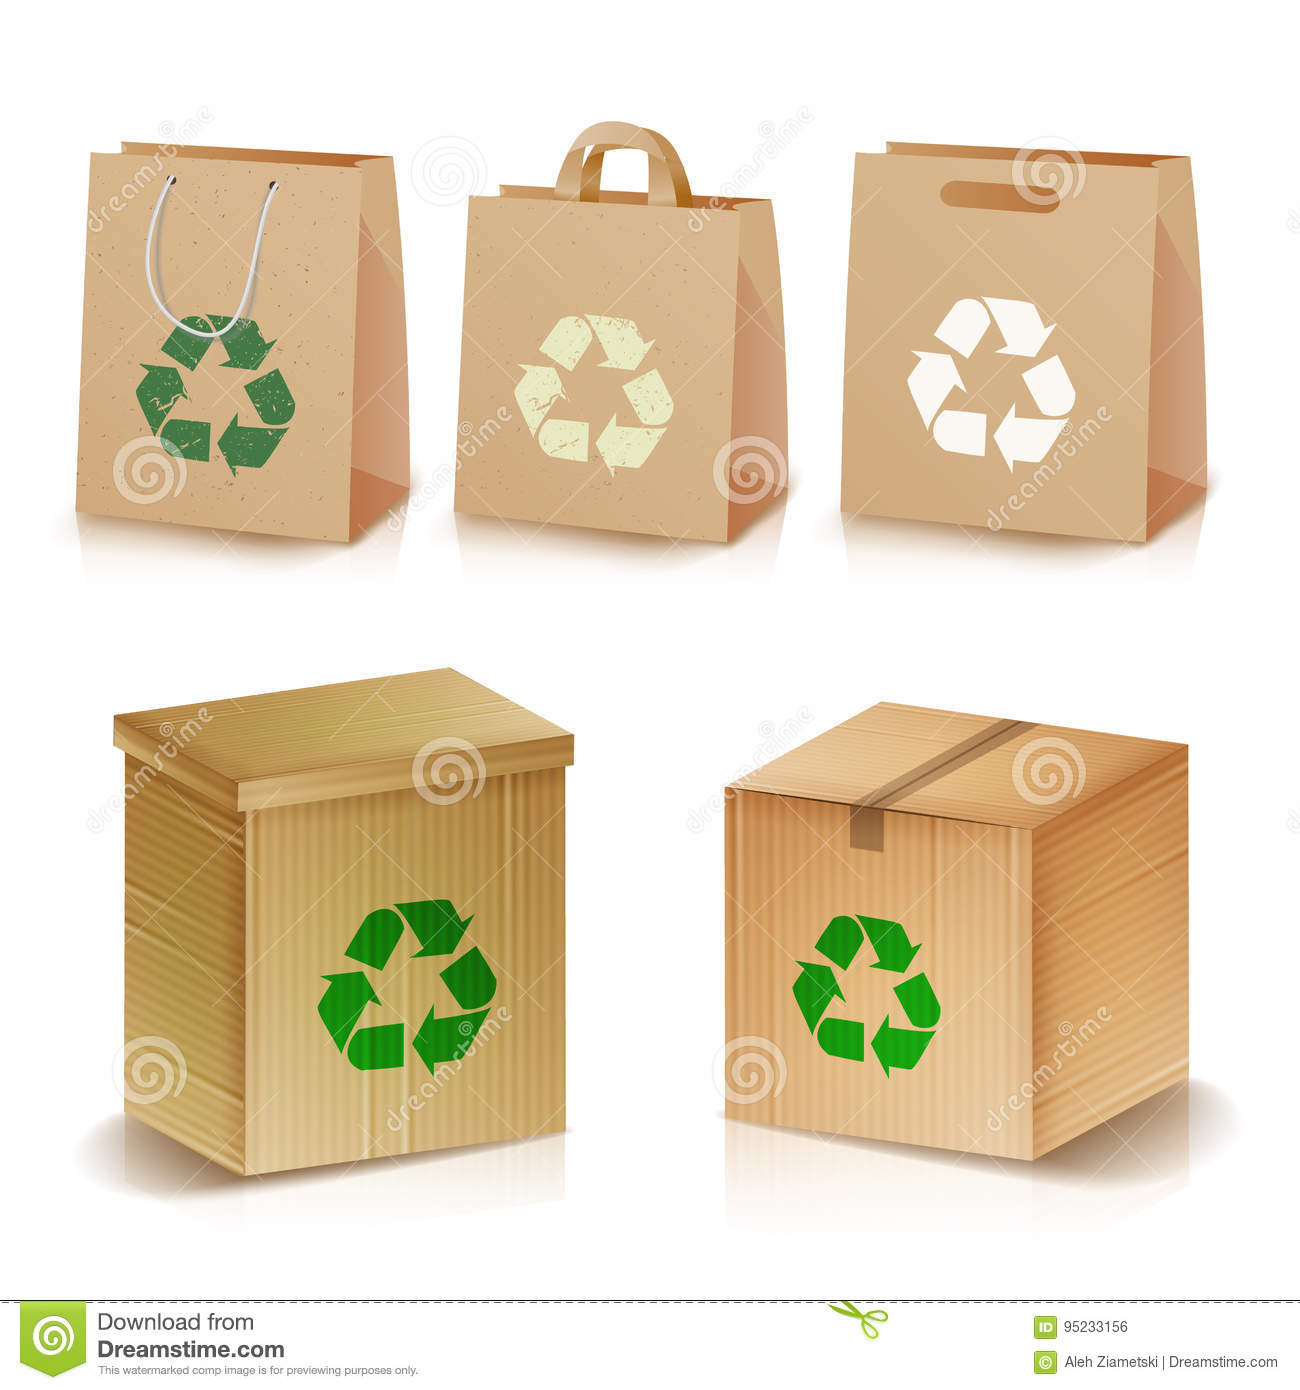 Recycling Paper Bags And Boxes. Realistic Blank Ecologic Craft Package. Illustration Of Recycled Brown Shopping Paper